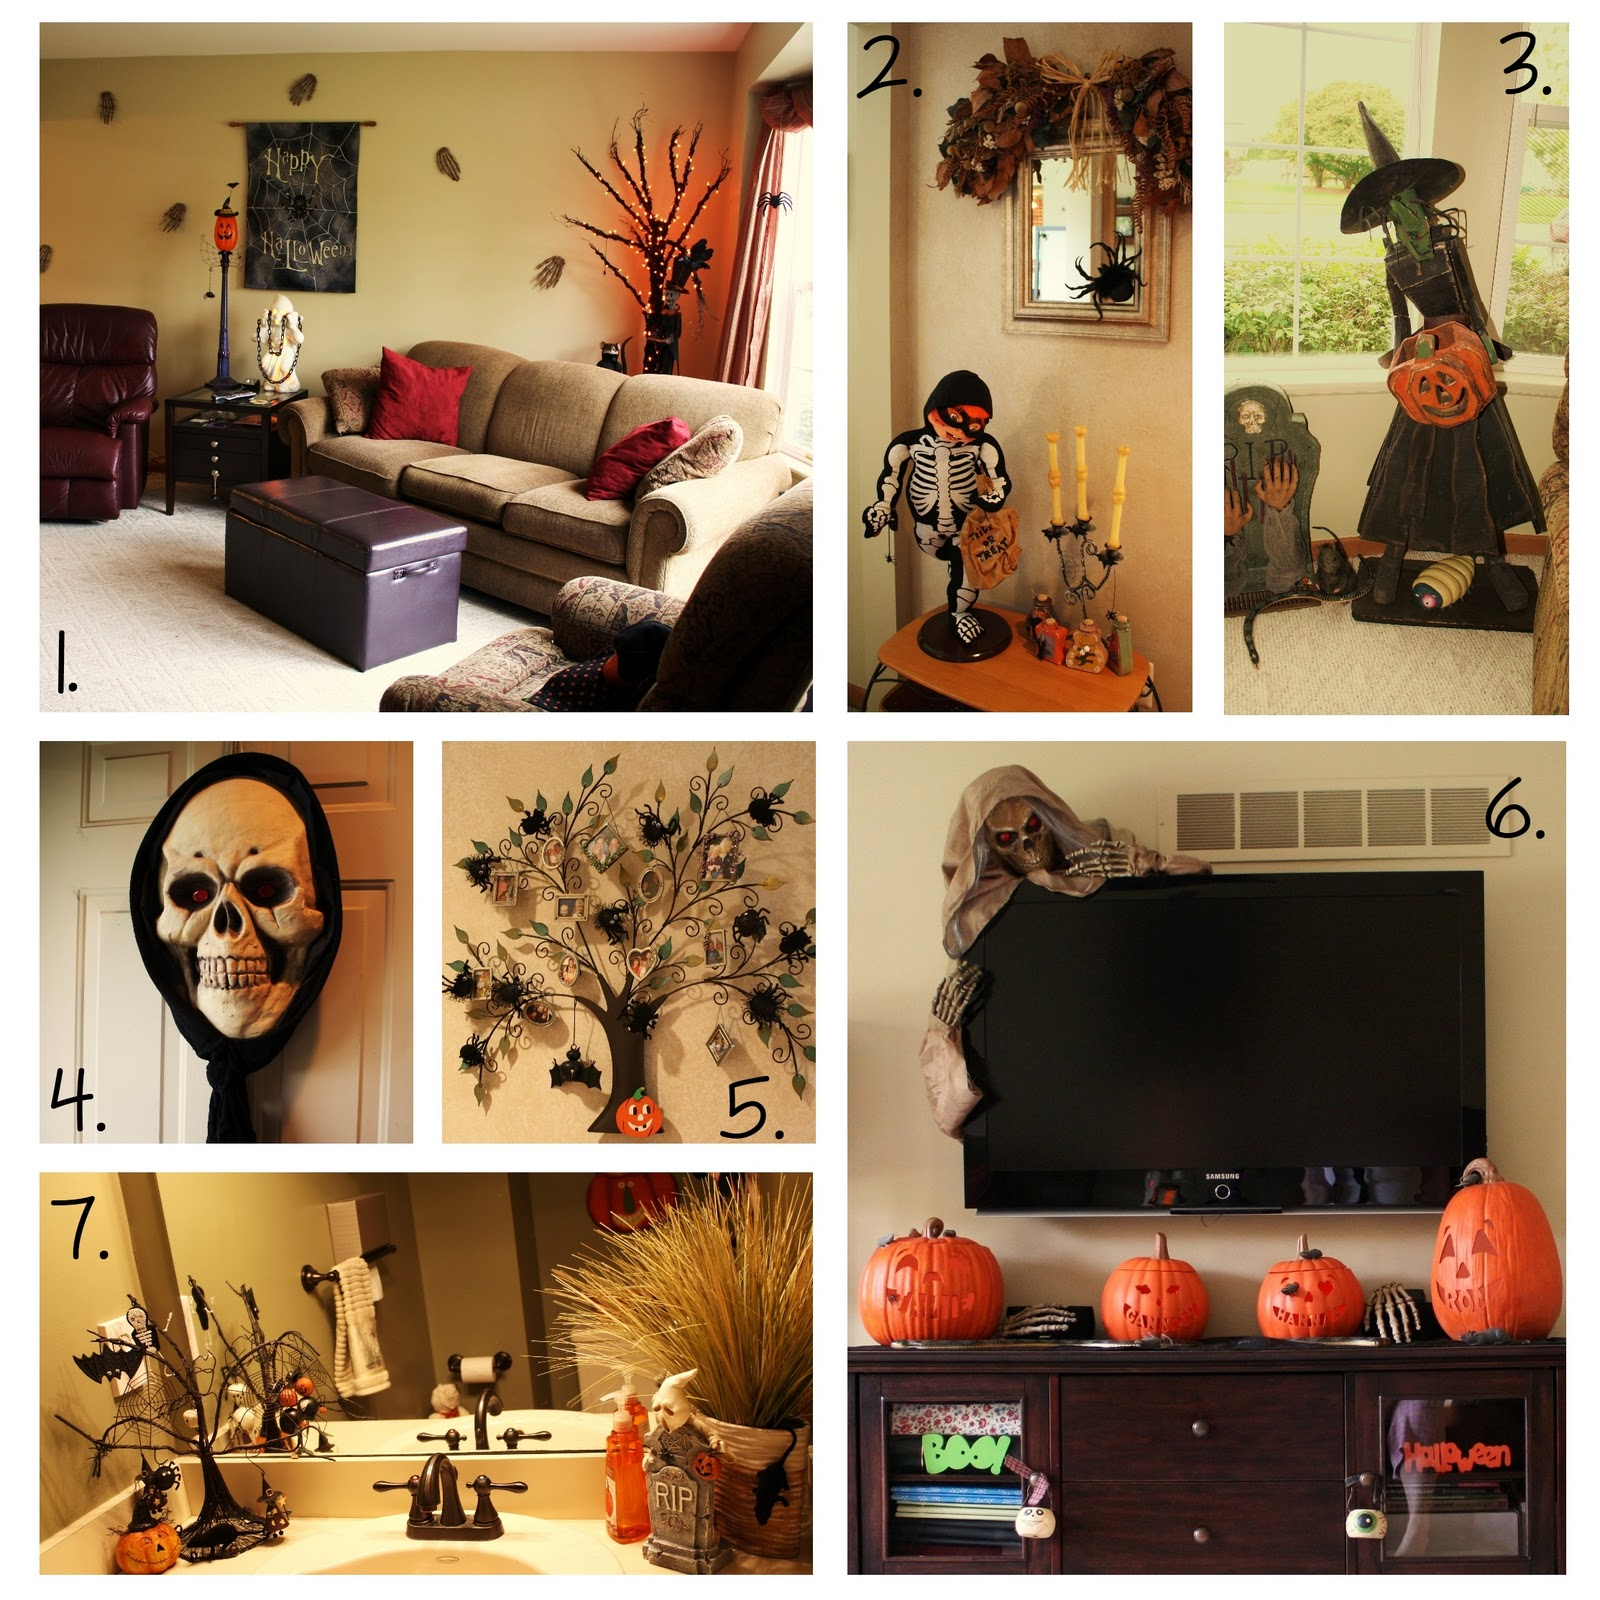 Bits of paper halloween decor well some of it Scary halloween decorating ideas inside